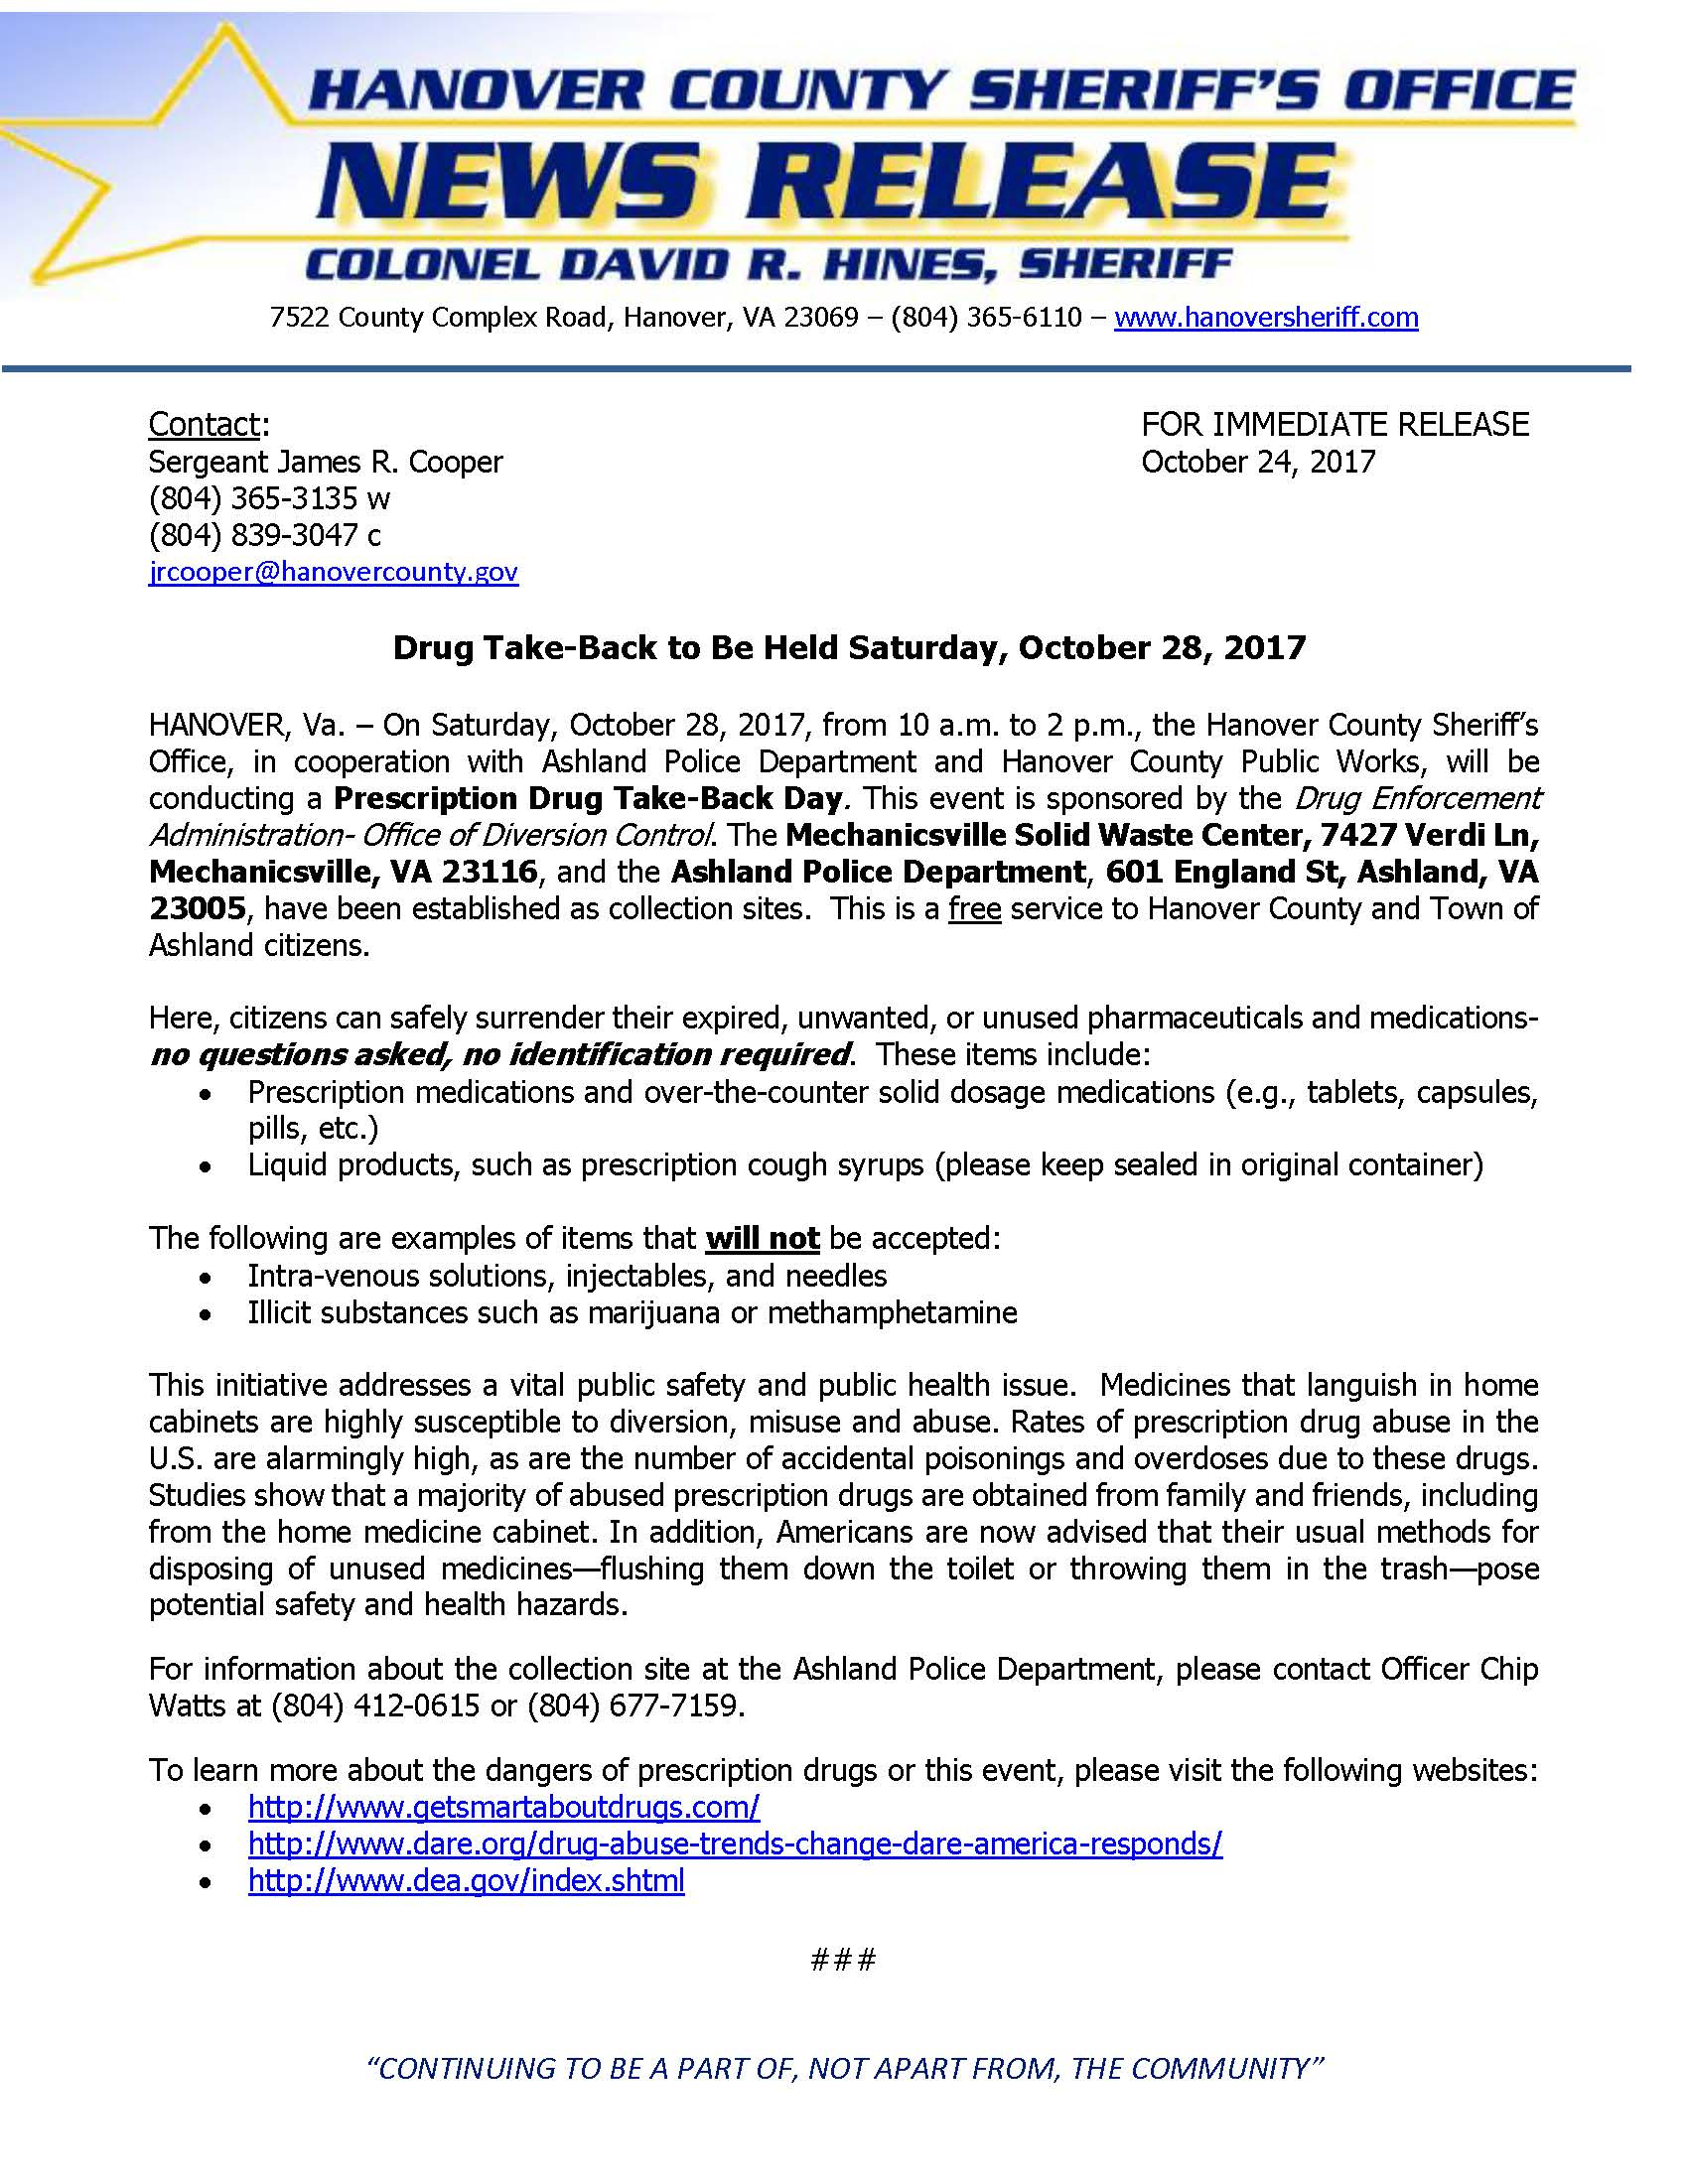 HCSO - Drug take back_10-28-17